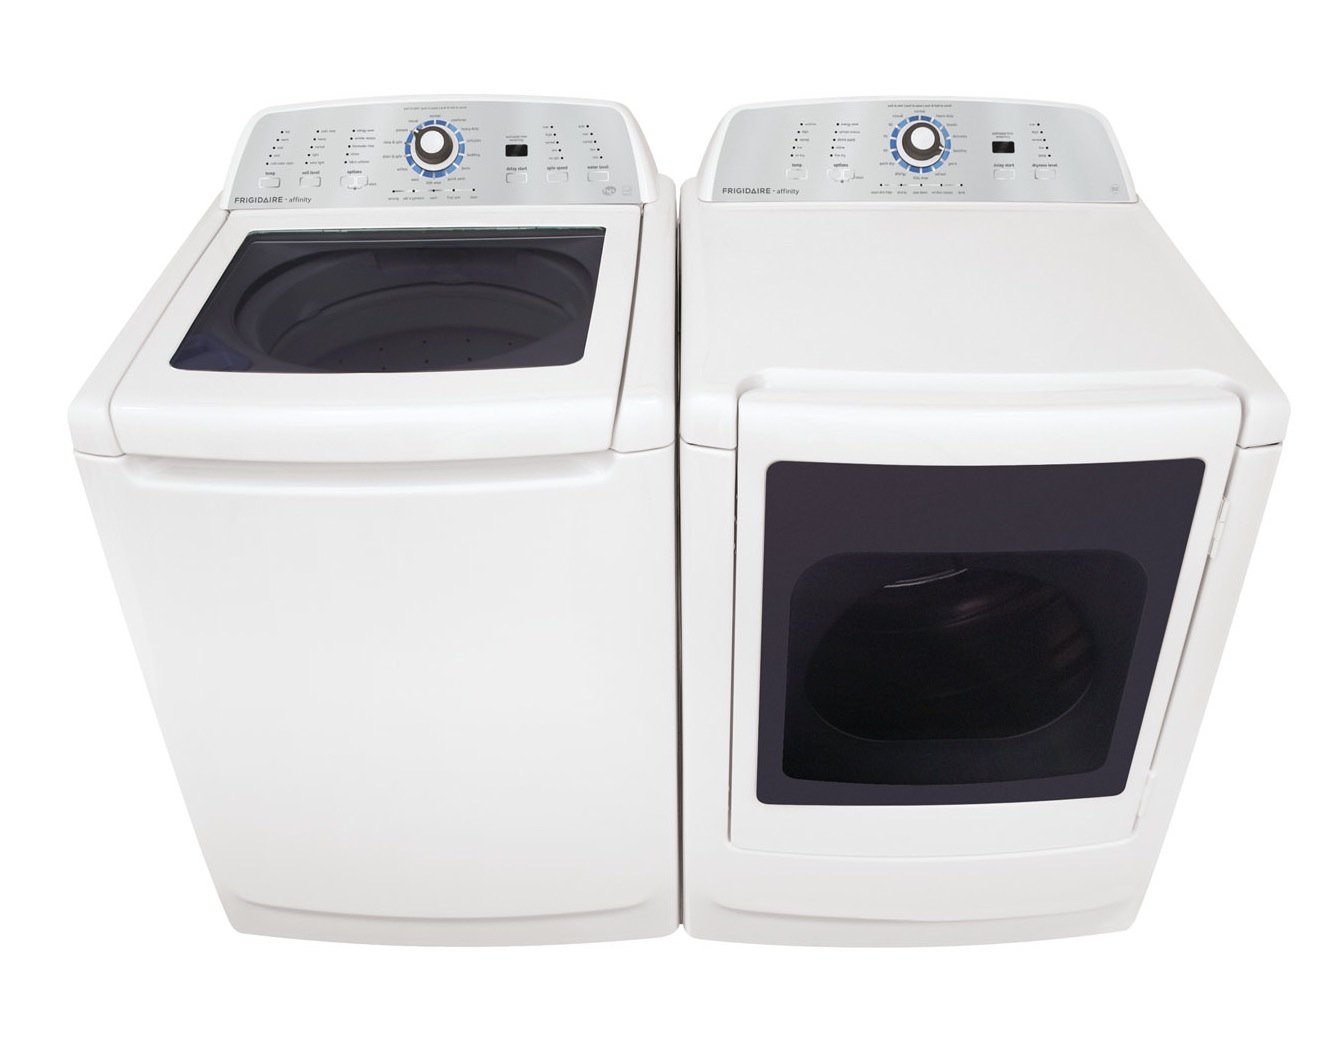 Frigidaire Top Load Washer & Electric Dryer Laundry Set FAHE4044MW_FARE4044MW